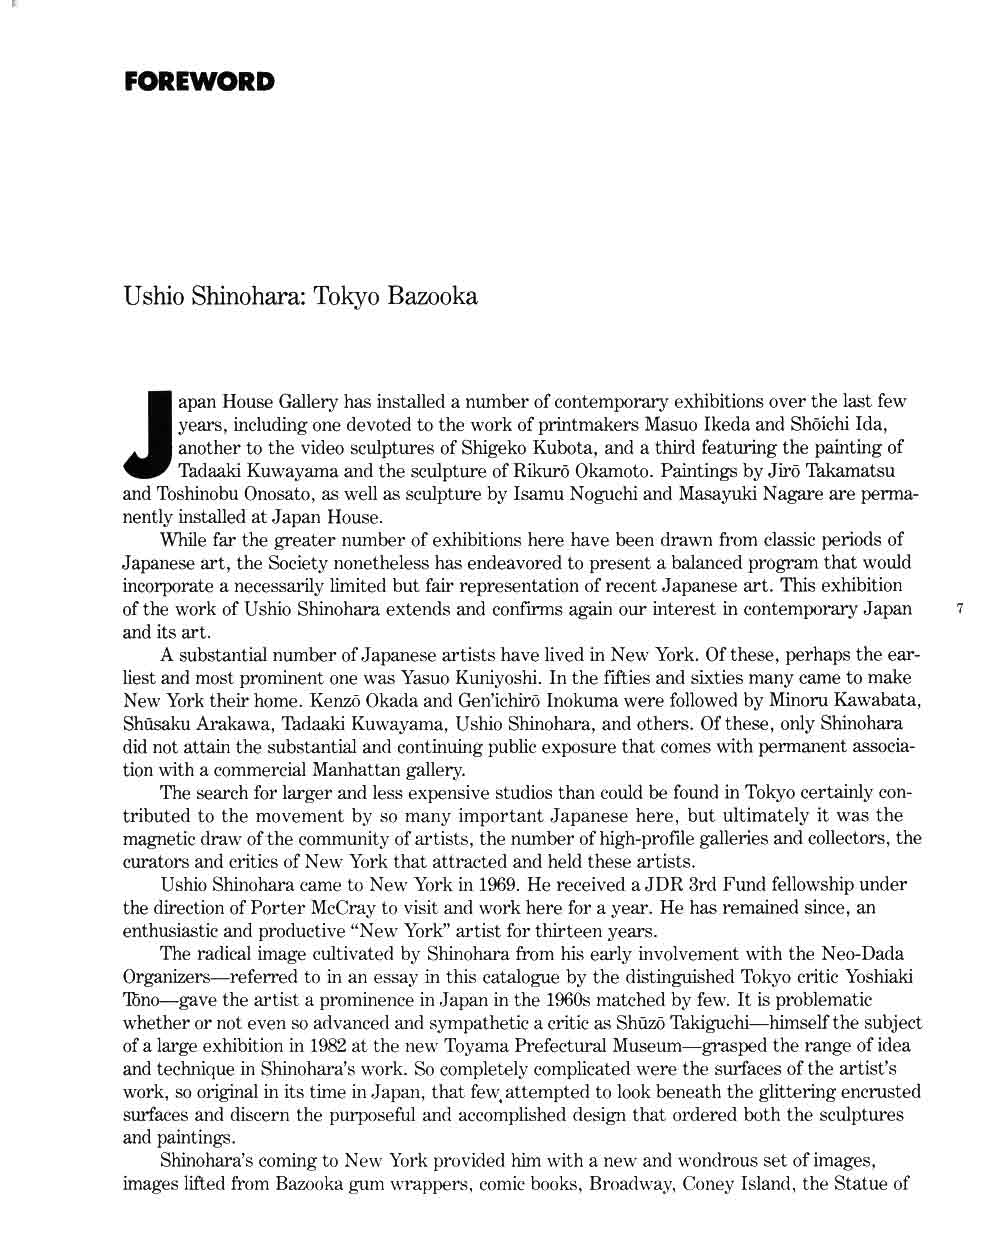 015 How To Write An Essay With Quotes Example Ushio Shinohara Tokyo Bazooka Pg 1 Imposing In Mla Integrate Quotations Writing Essays-apa Or Include A Direct Quote Apa Full